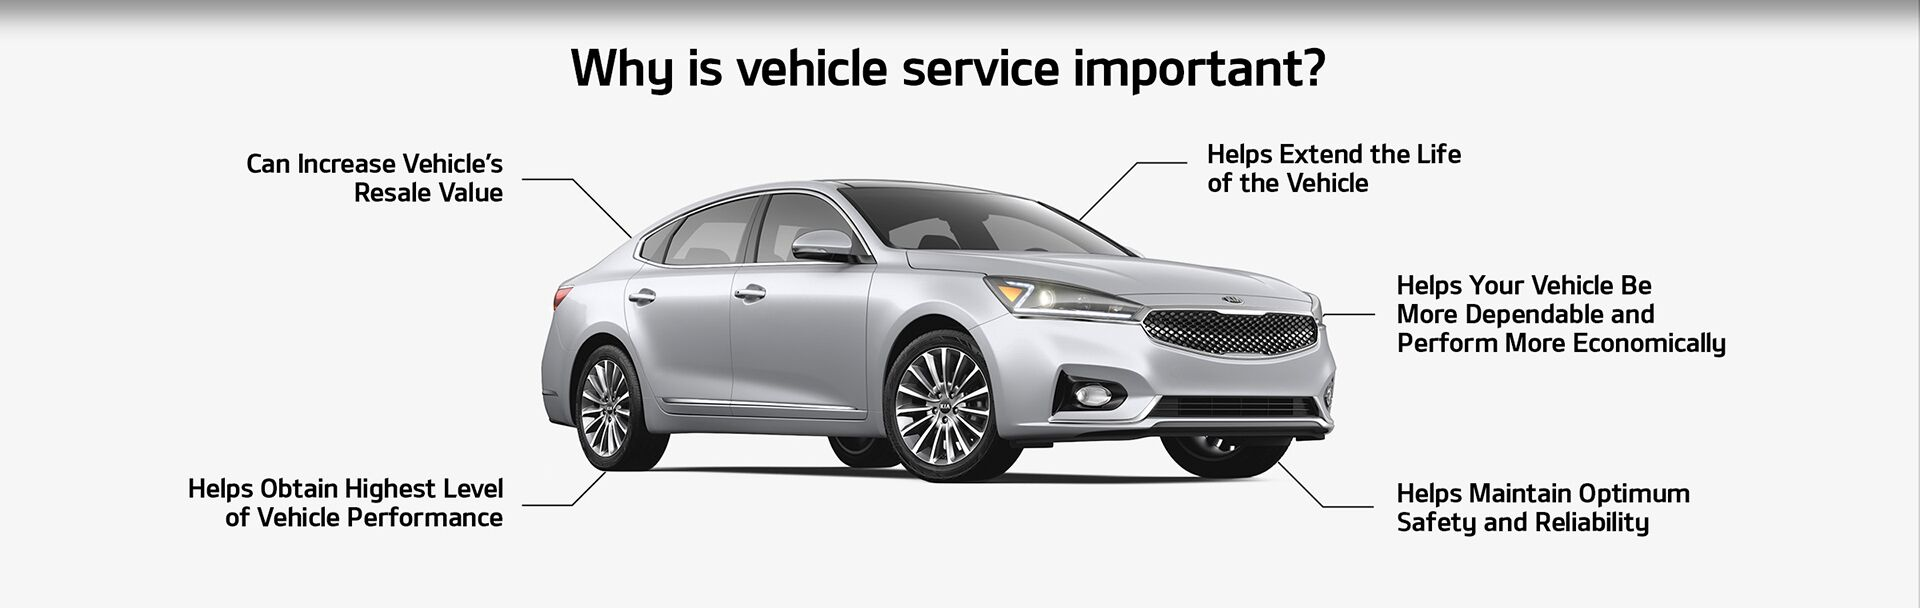 Why is vehicle service important?